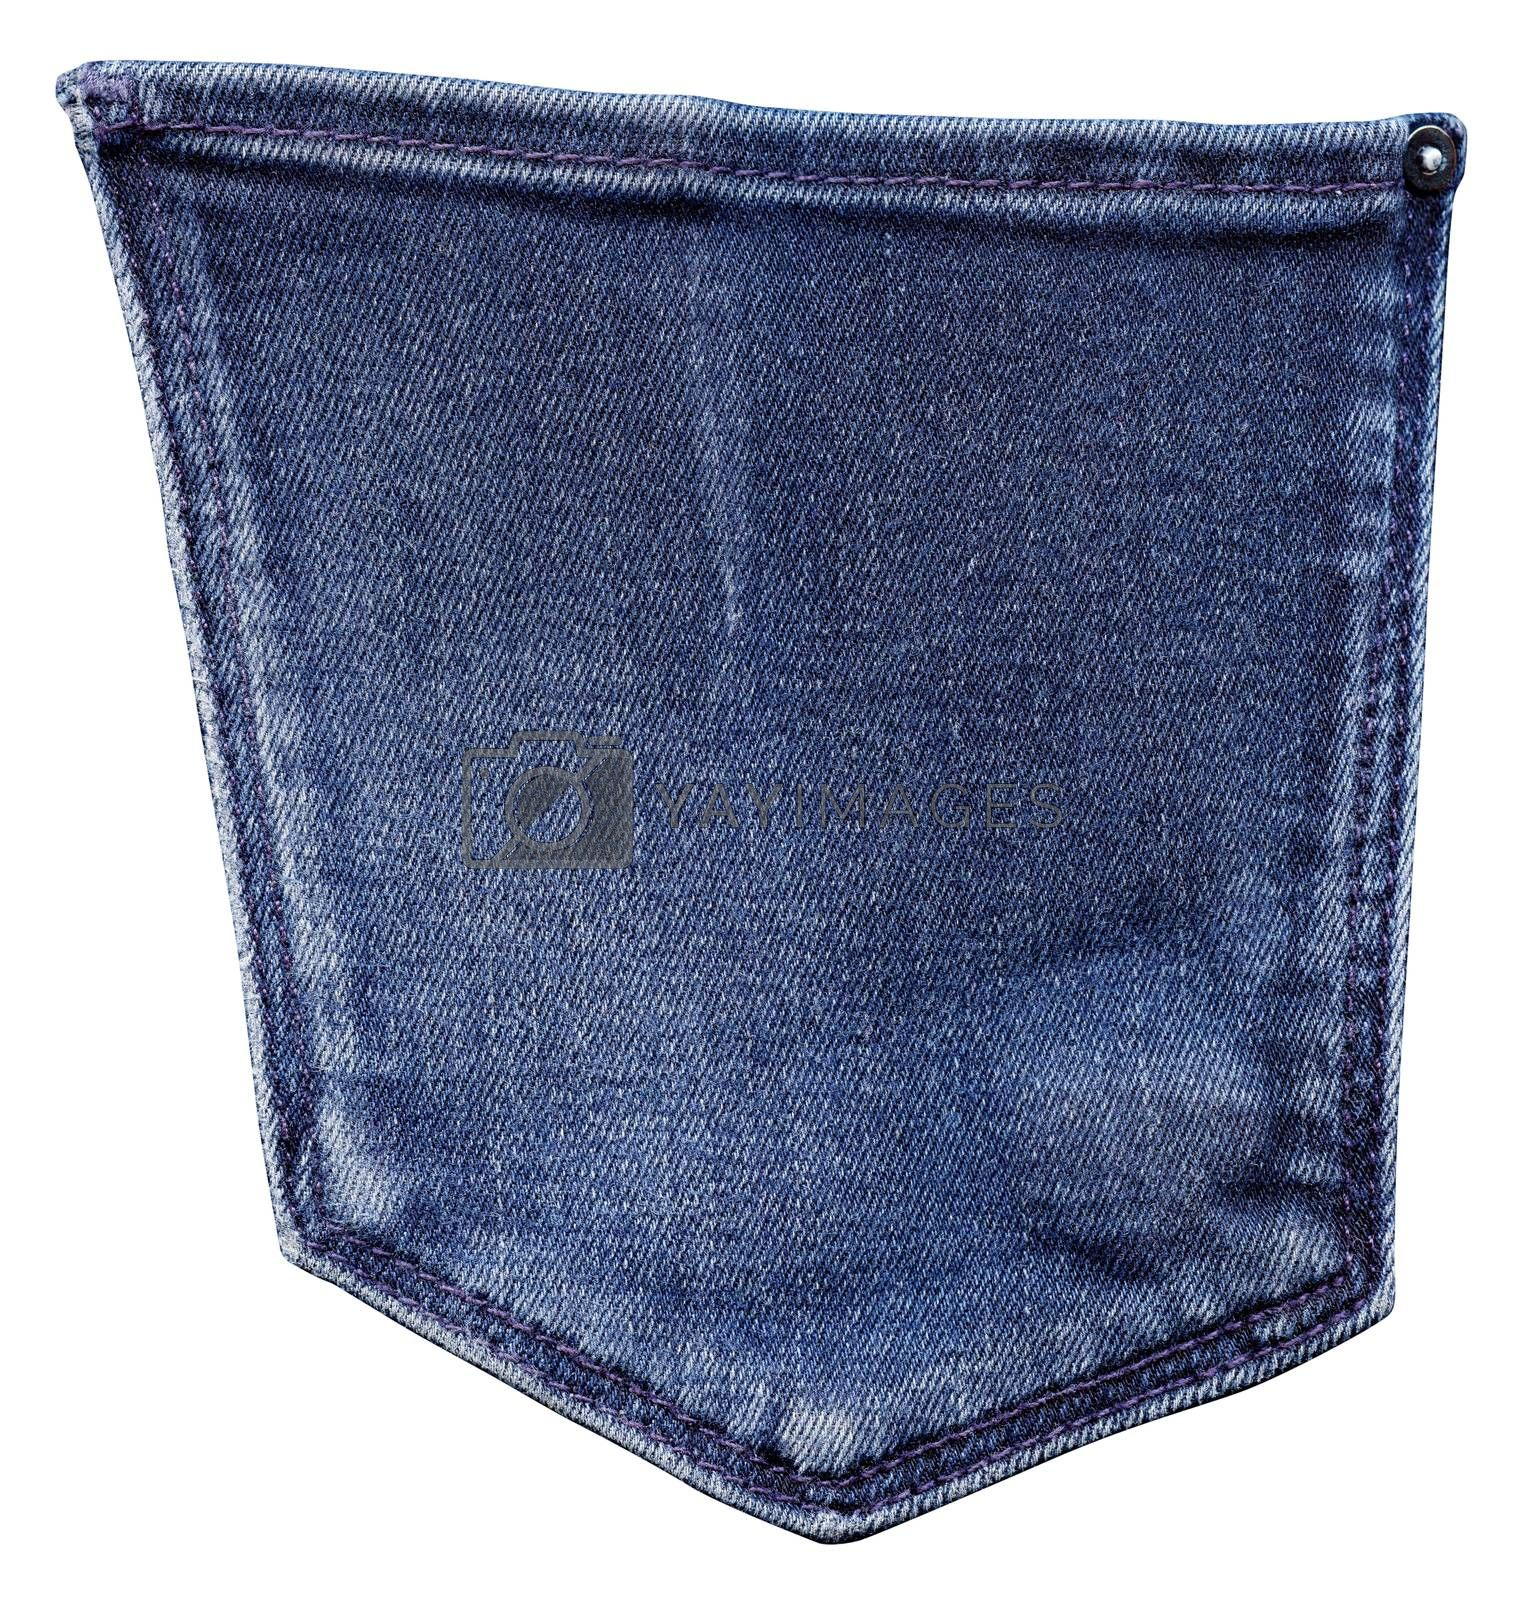 Royalty free image of Back jeans pocket by ESSL